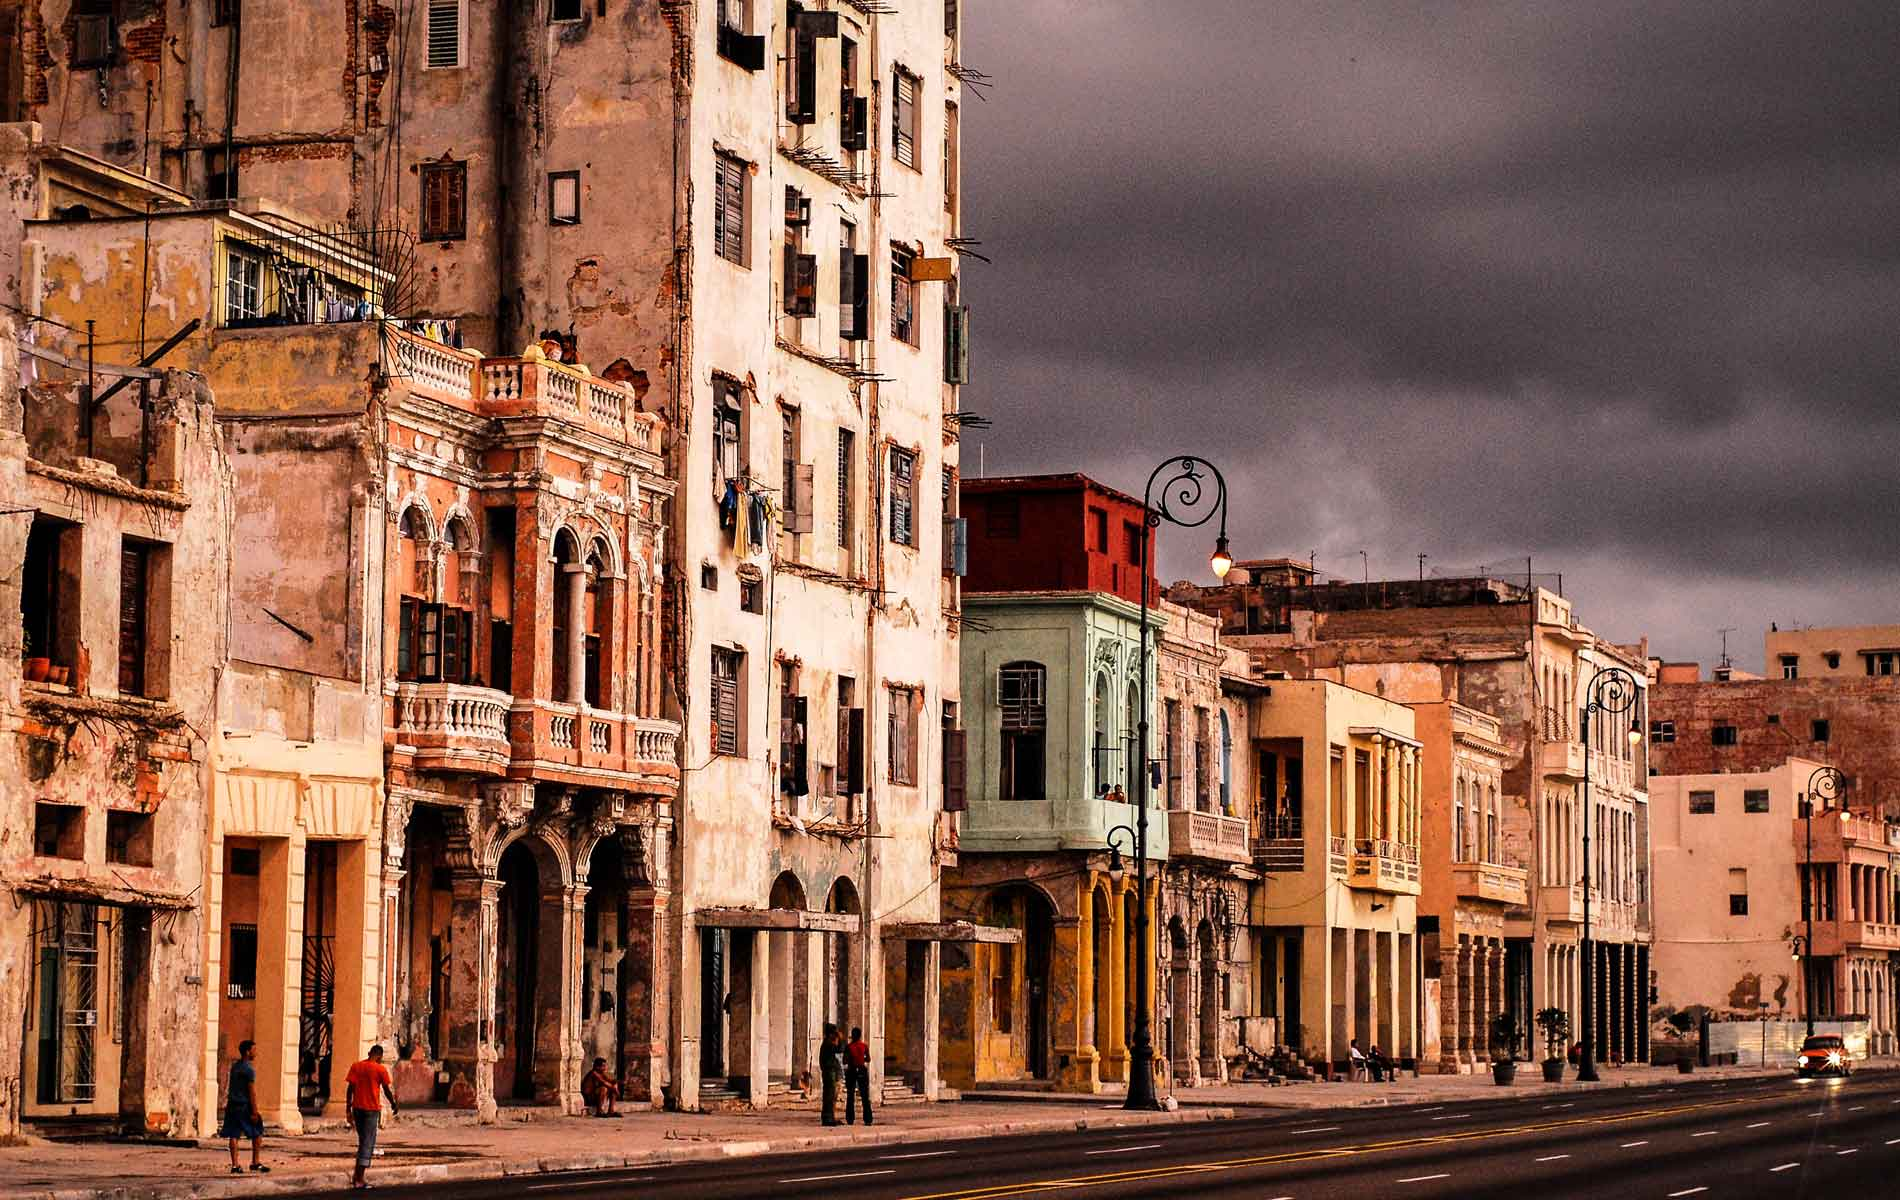 How do you live in Havana, Cuba, as an expat?